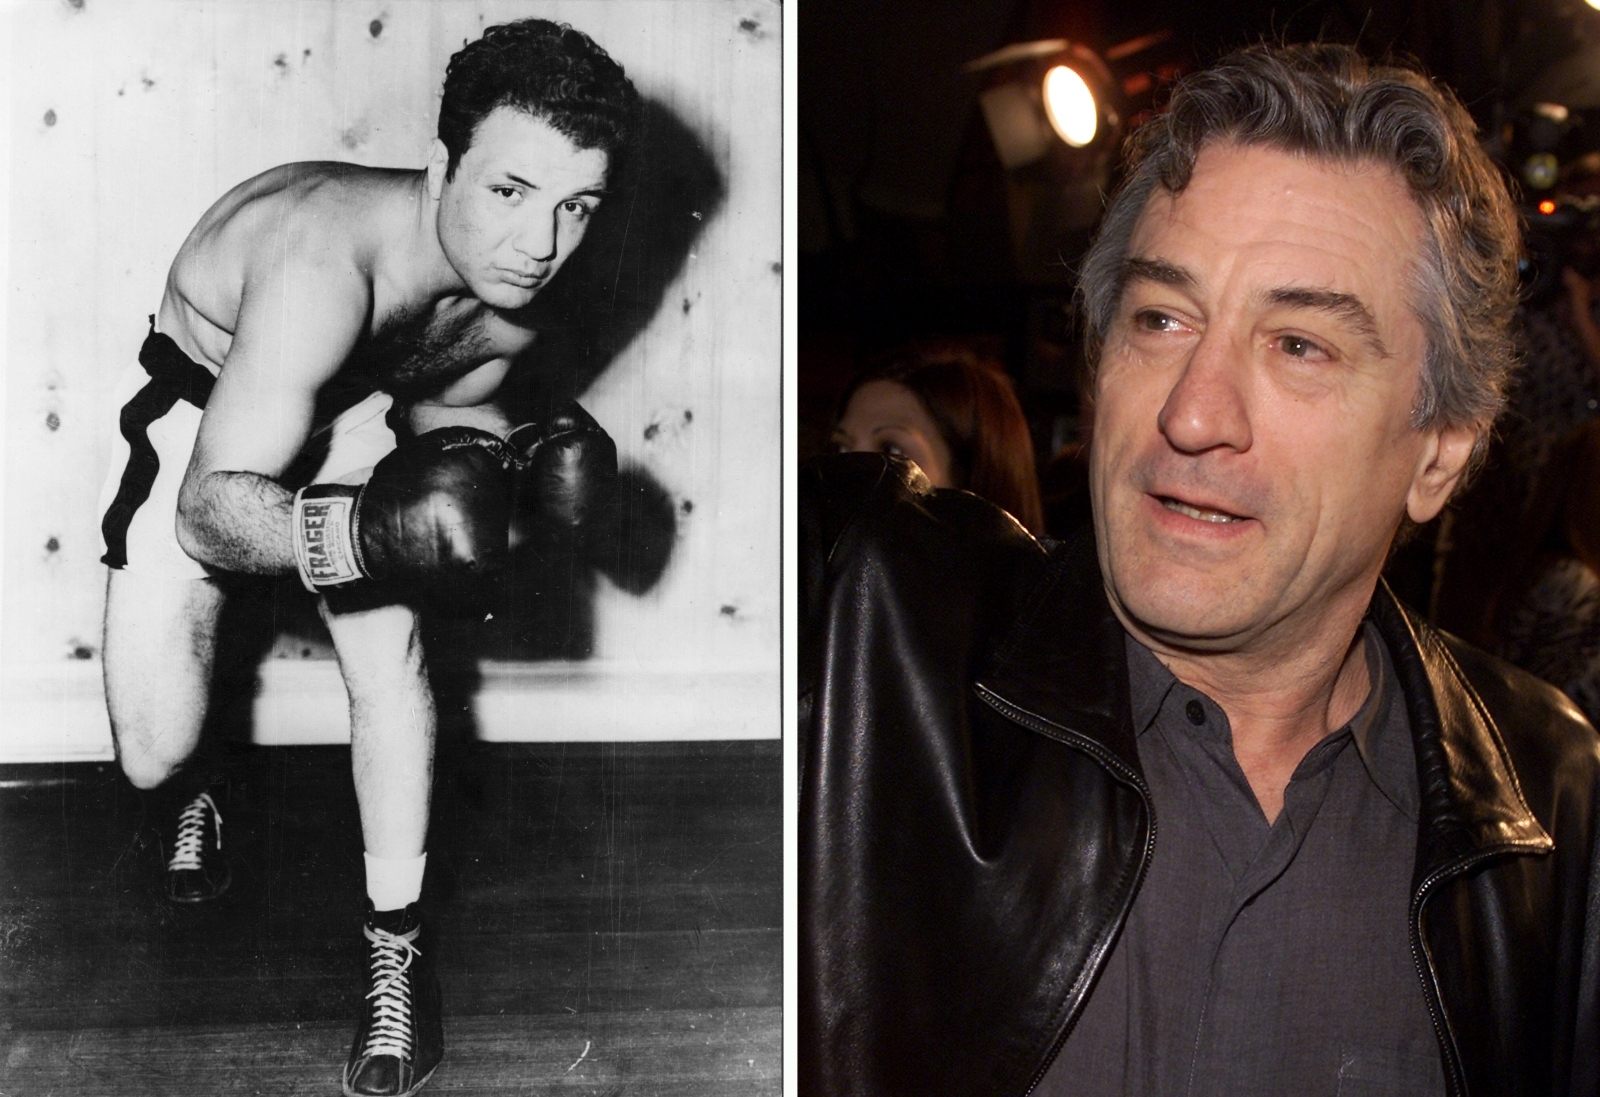 Jake LaMotta, boxer profiled in 'Raging Bull,' dies at 95